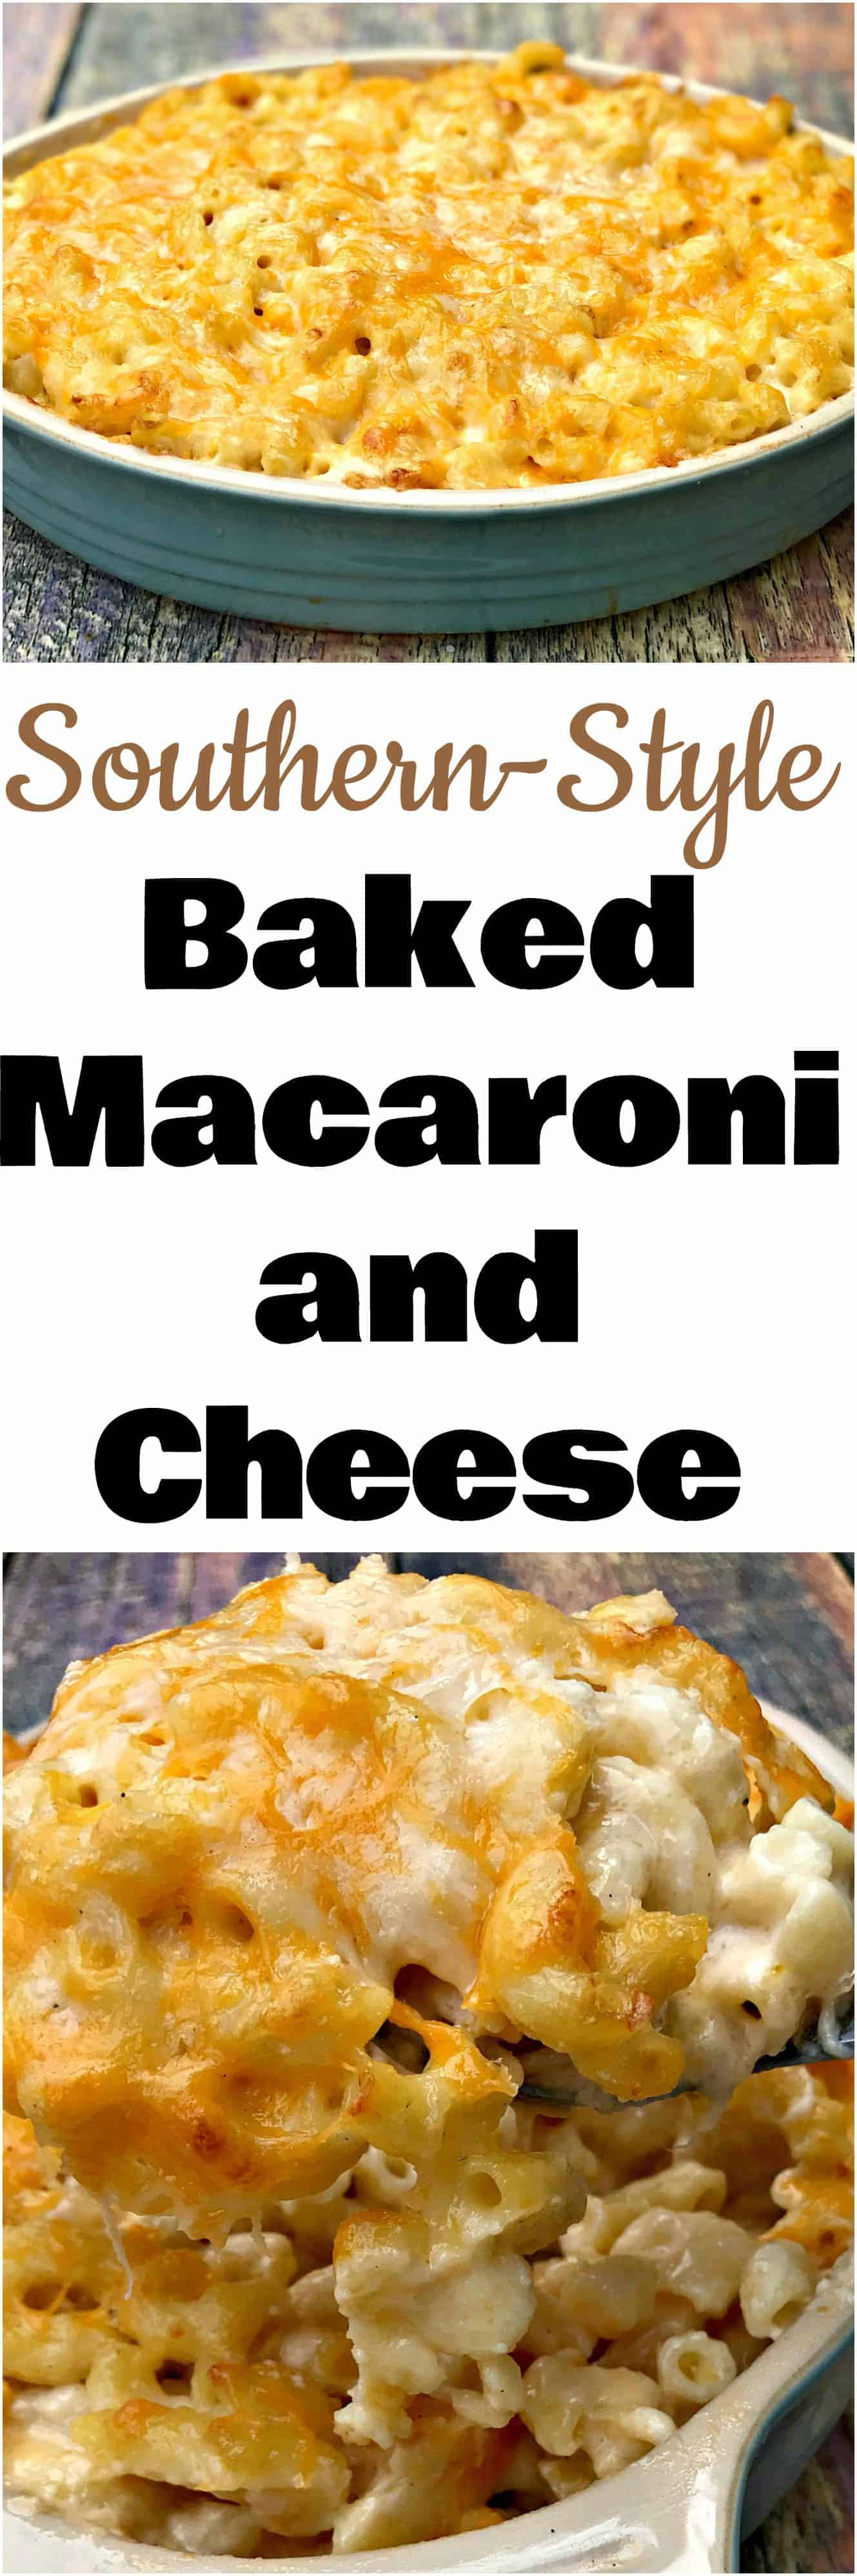 How To Cook Baked Macaroni And Cheese Southern Style